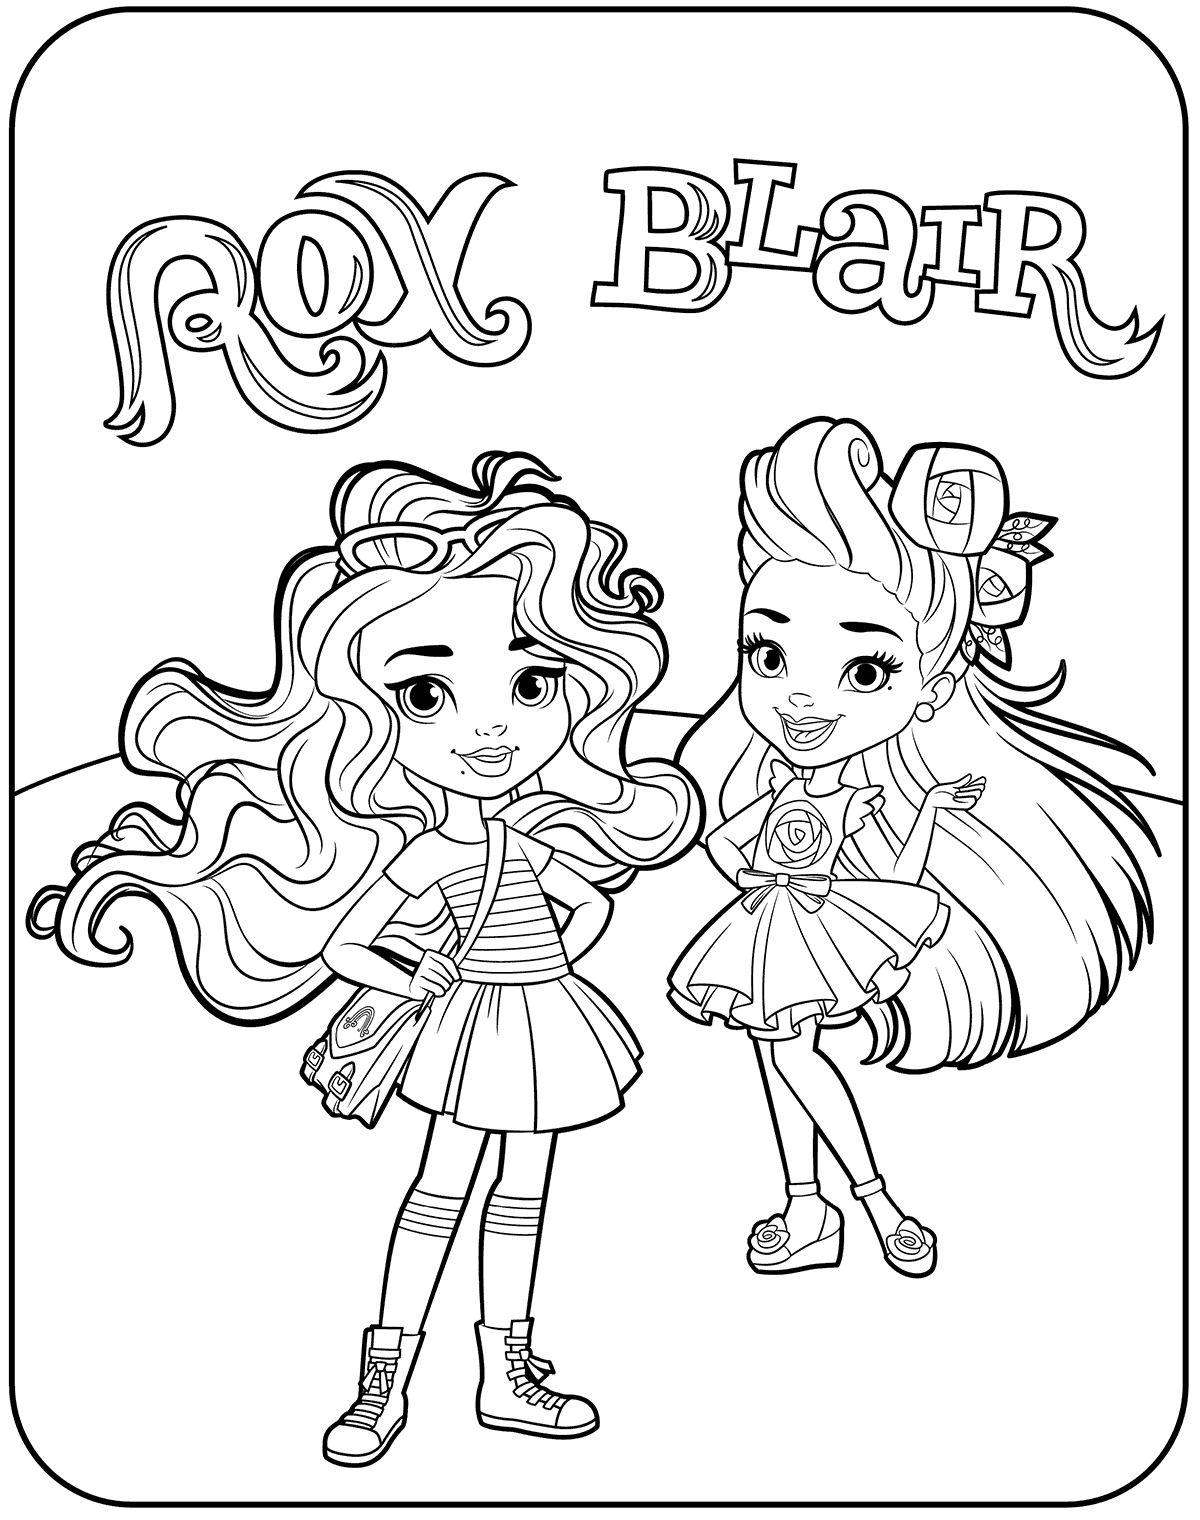 Blair And Rox From Sunny Day Coloring Pages Free Printable Coloring Pages Coloring Pages Cartoon Coloring Pages